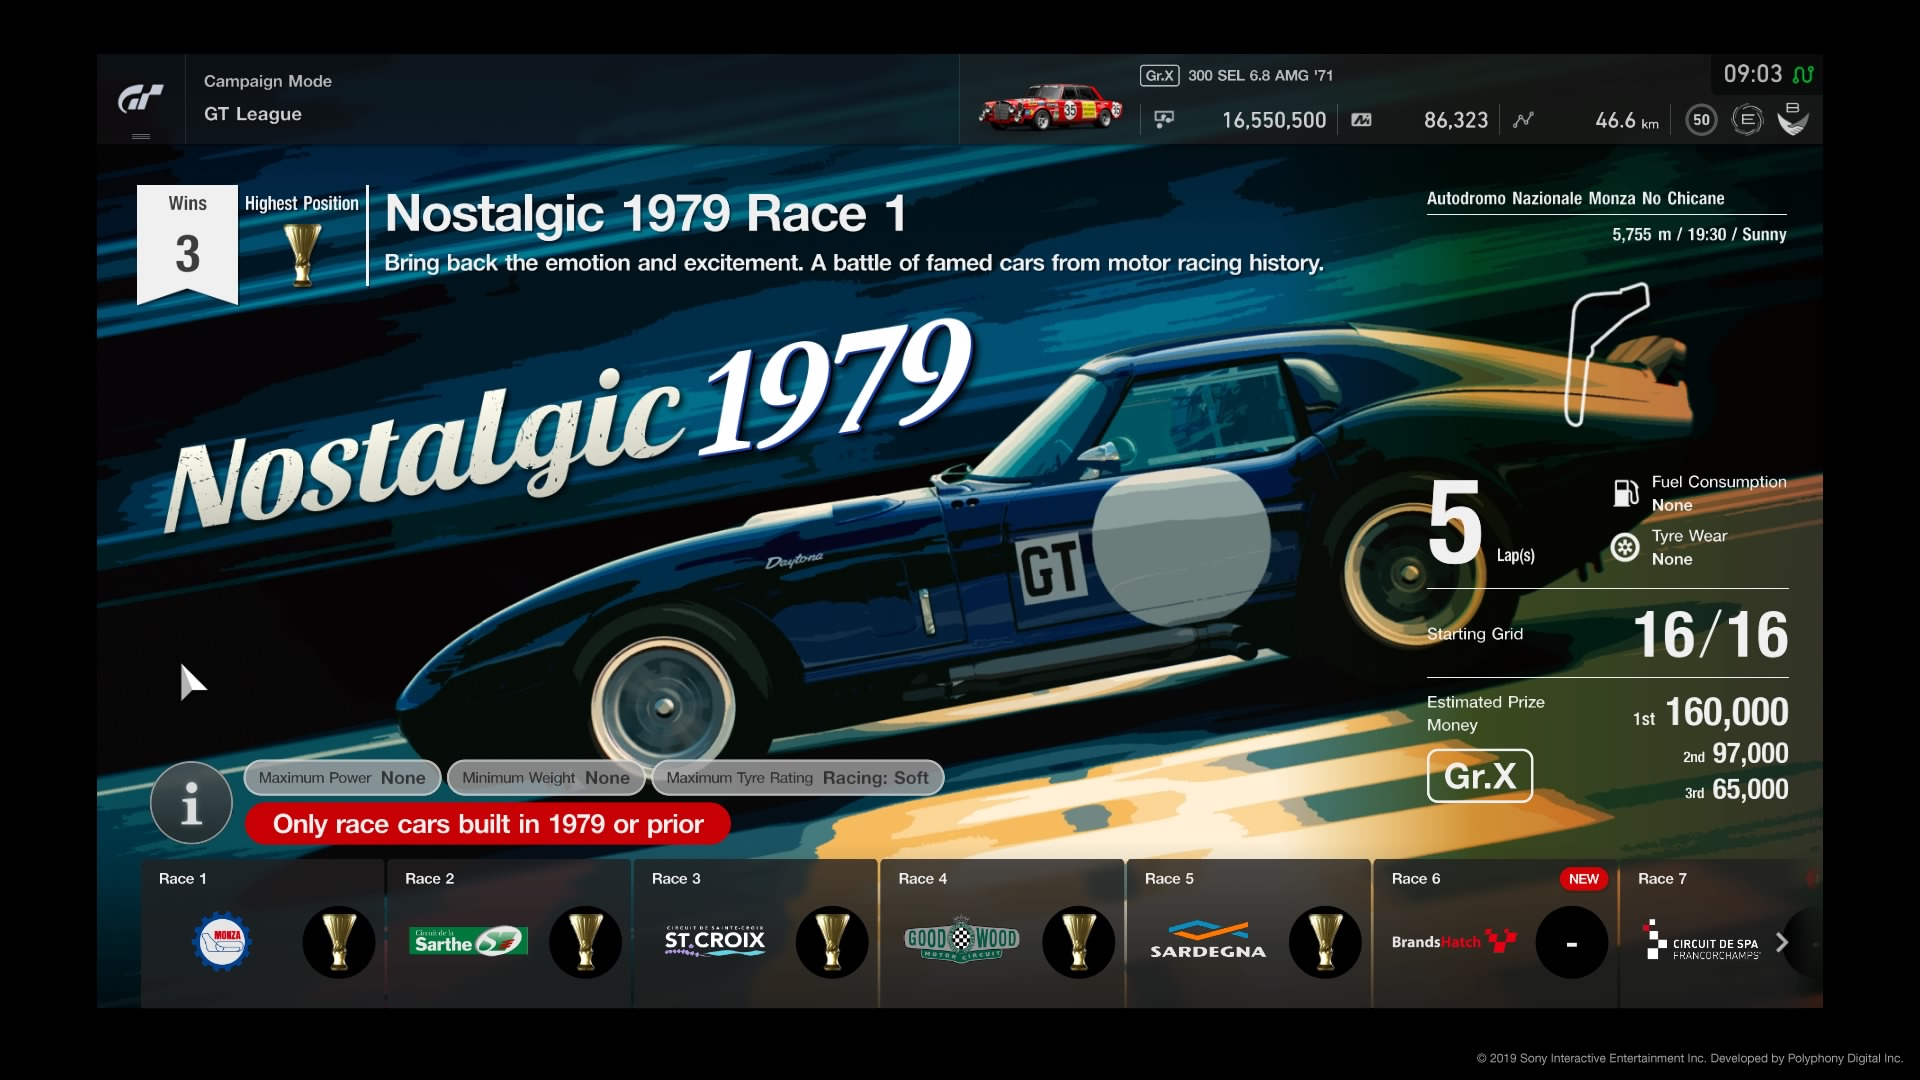 Nostalgic 1979 Is A 3 Race Event That Ears In Gran Turismo Sport It Was Added To Gt League Mode Update V1 25 The Housed Professional